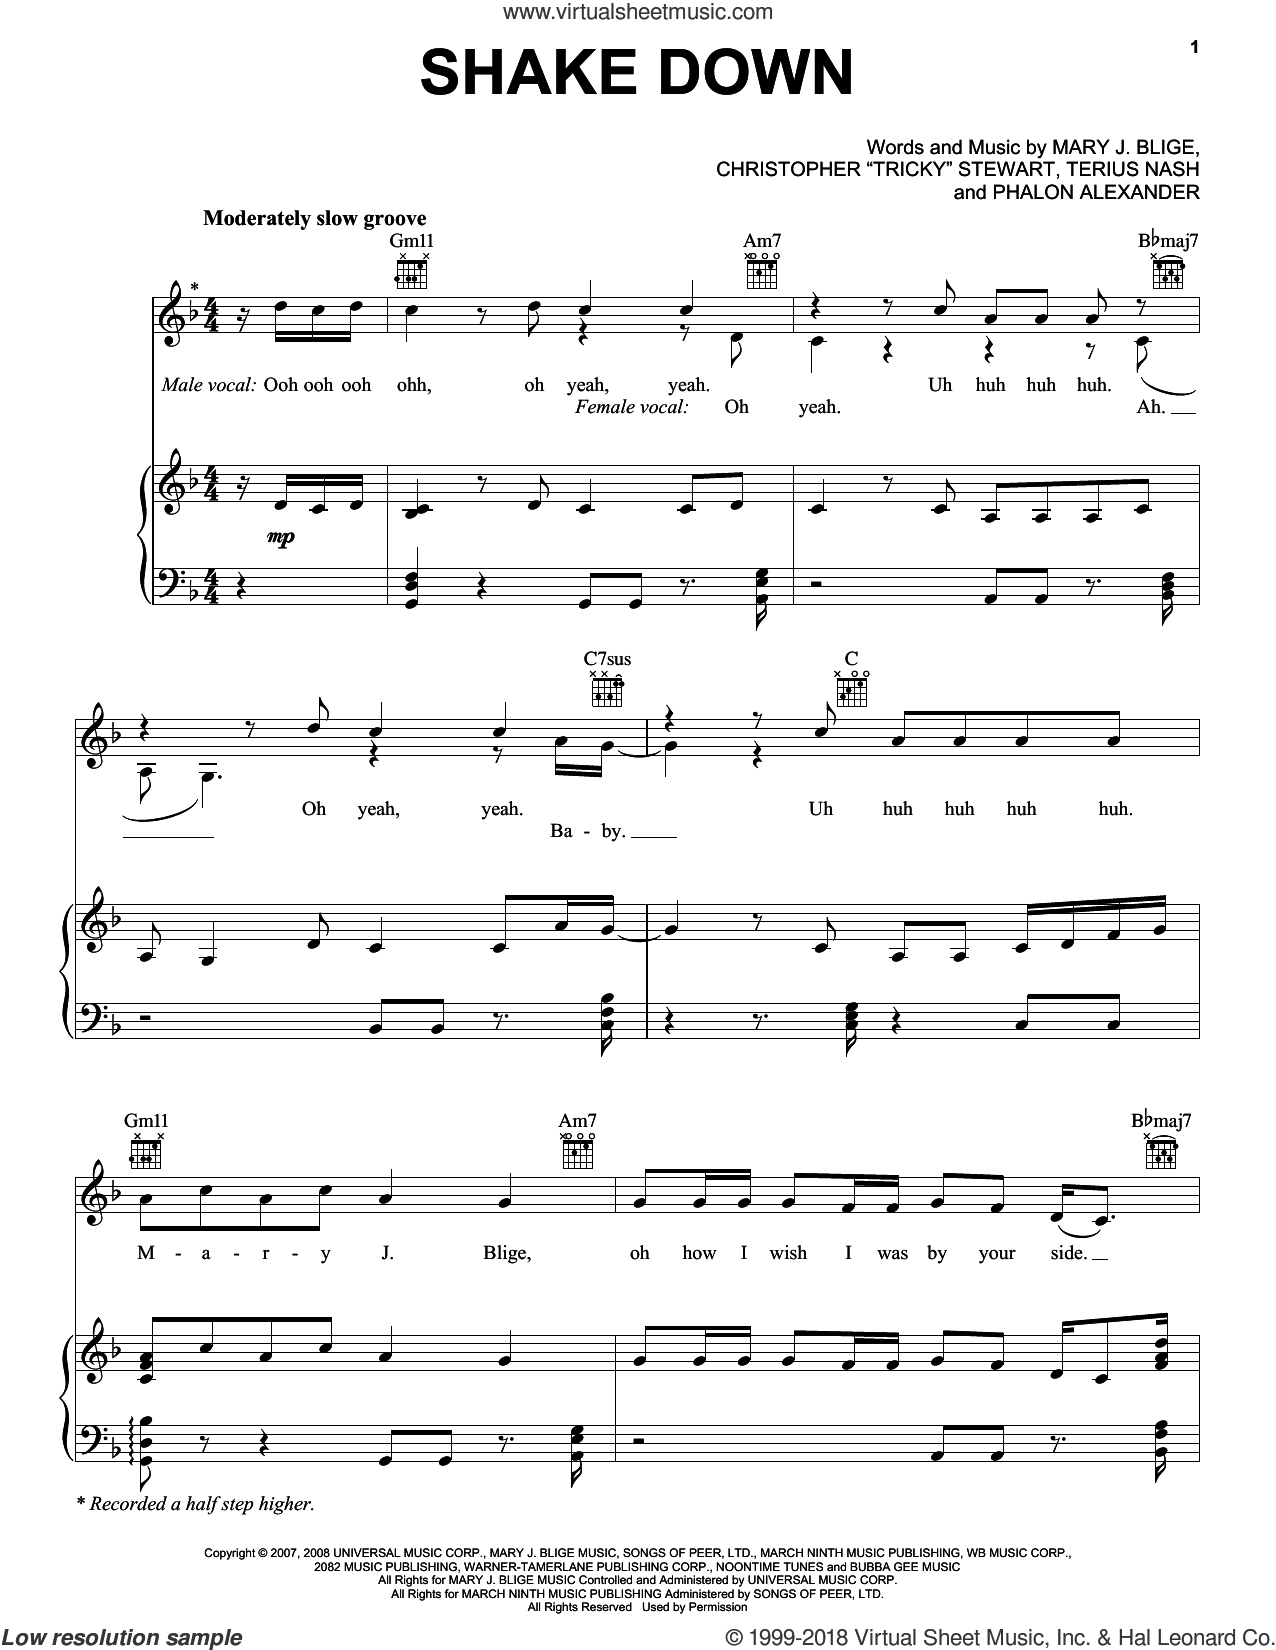 Shake Down sheet music for voice, piano or guitar by Mary J. Blige, Christopher 'Tricky' Stewart, Phalon Alexander and Terius Nash, intermediate skill level